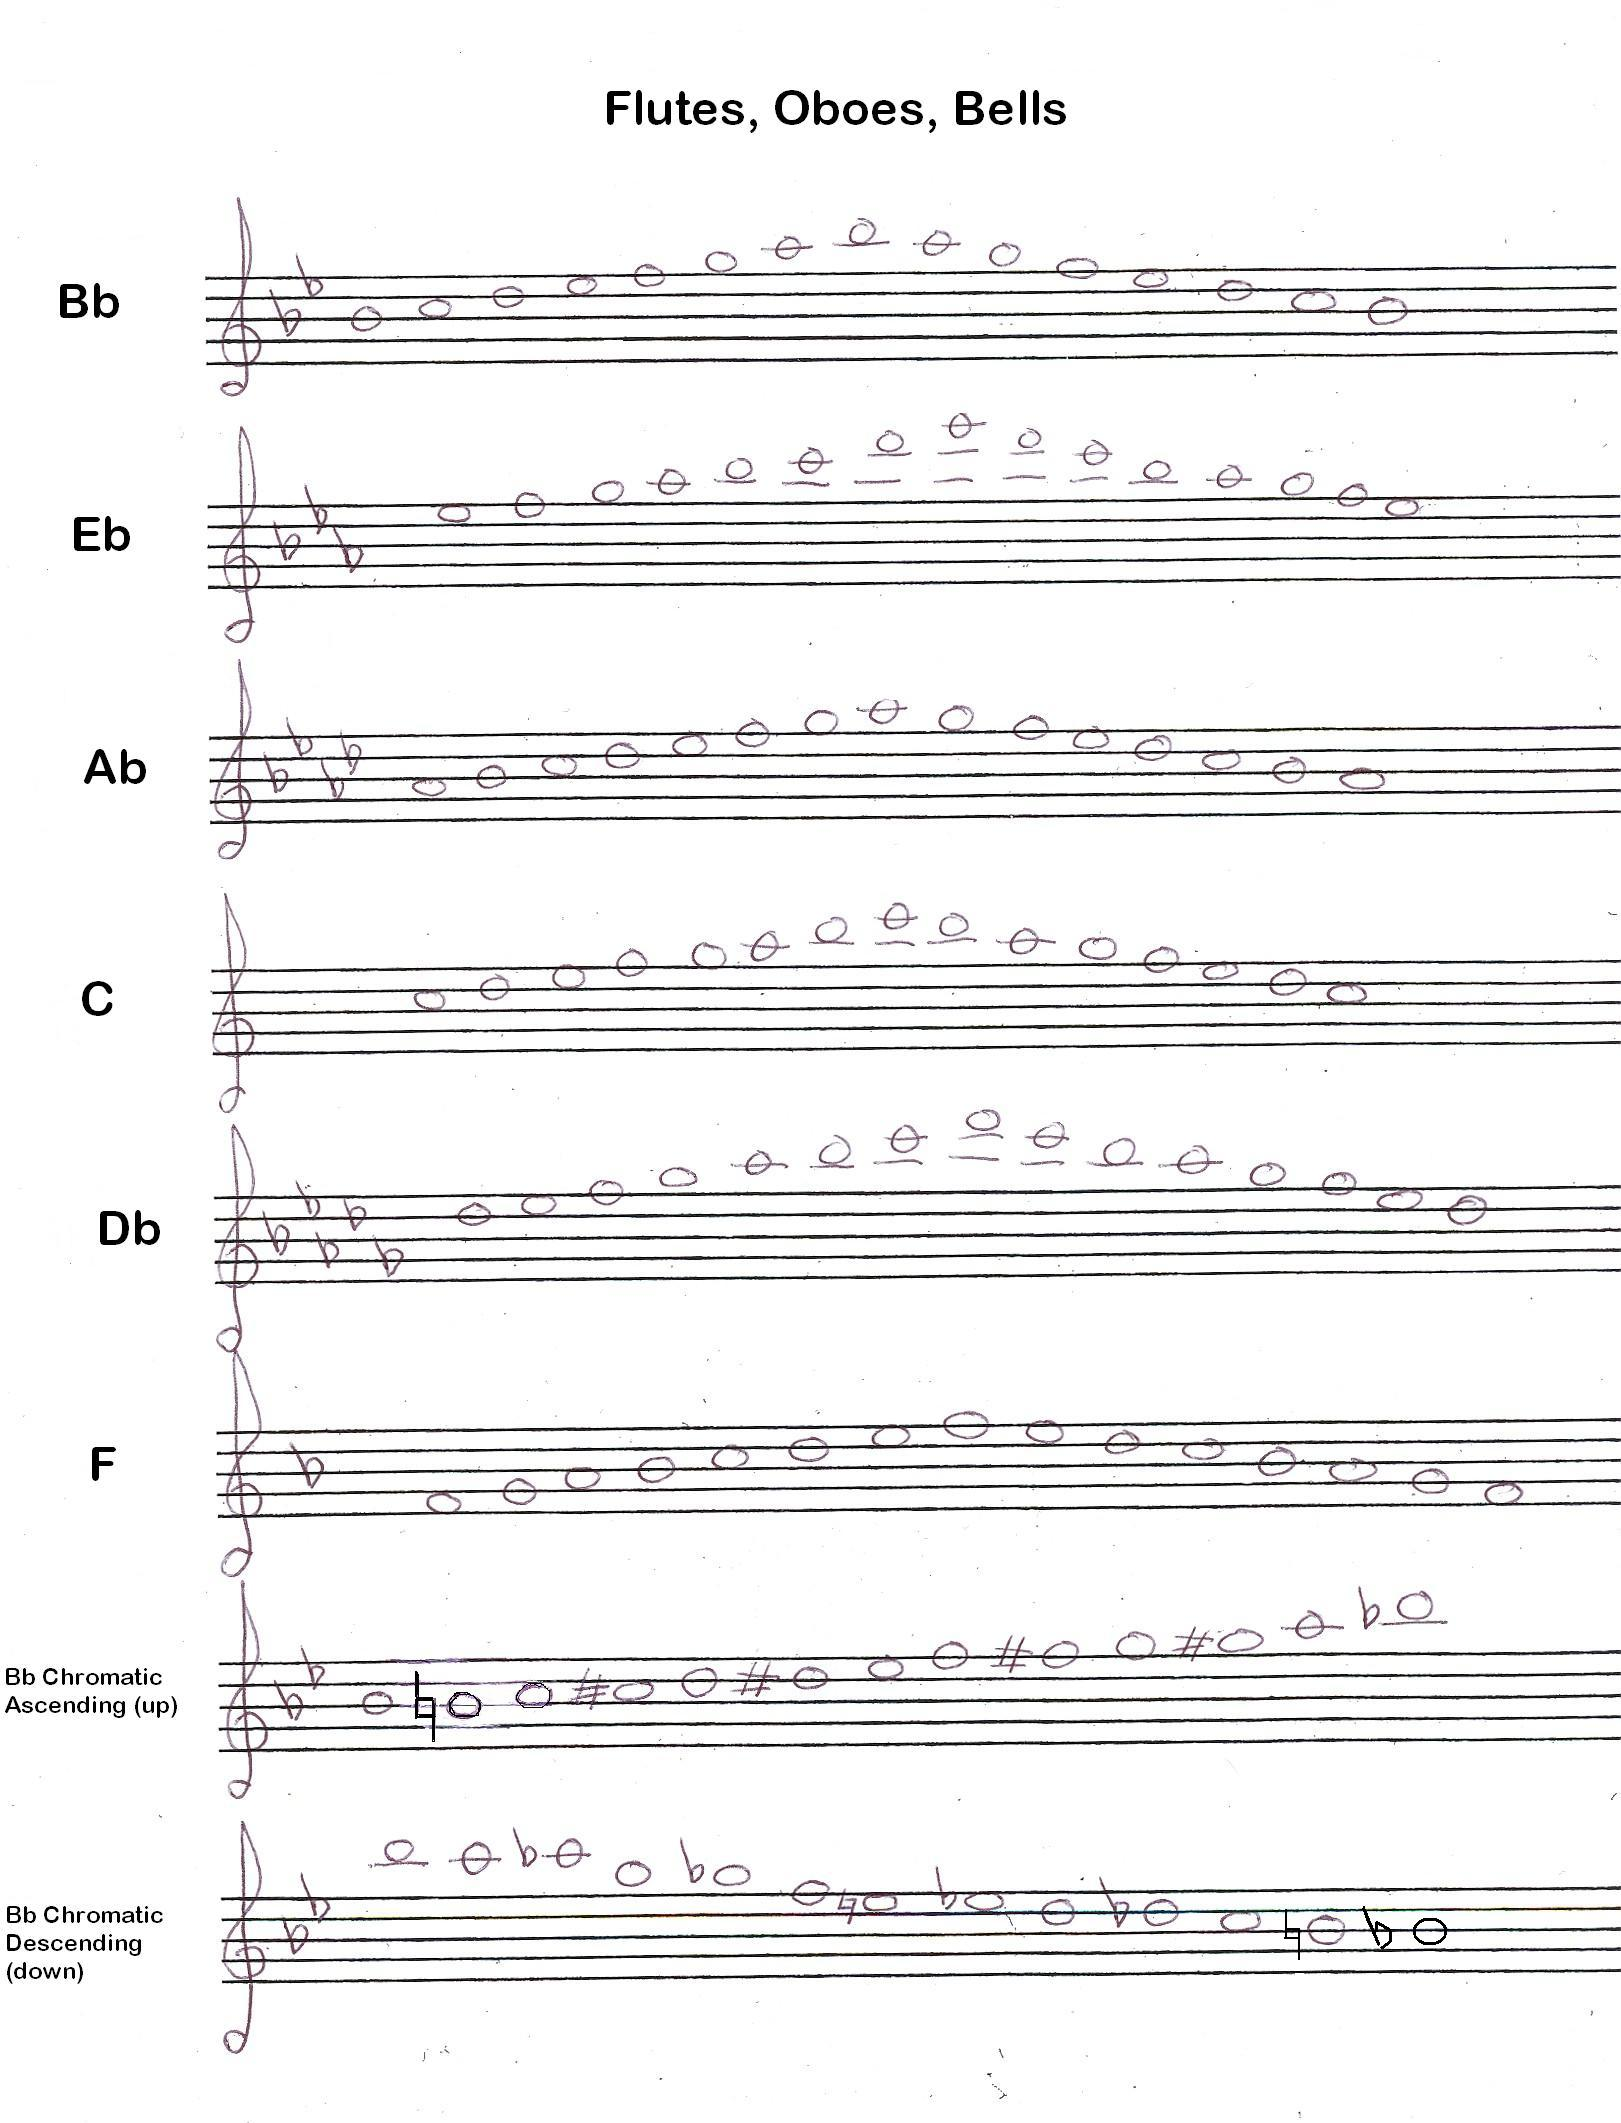 Sheet Music in b Flat Sheet Music Plus Flute Sheet